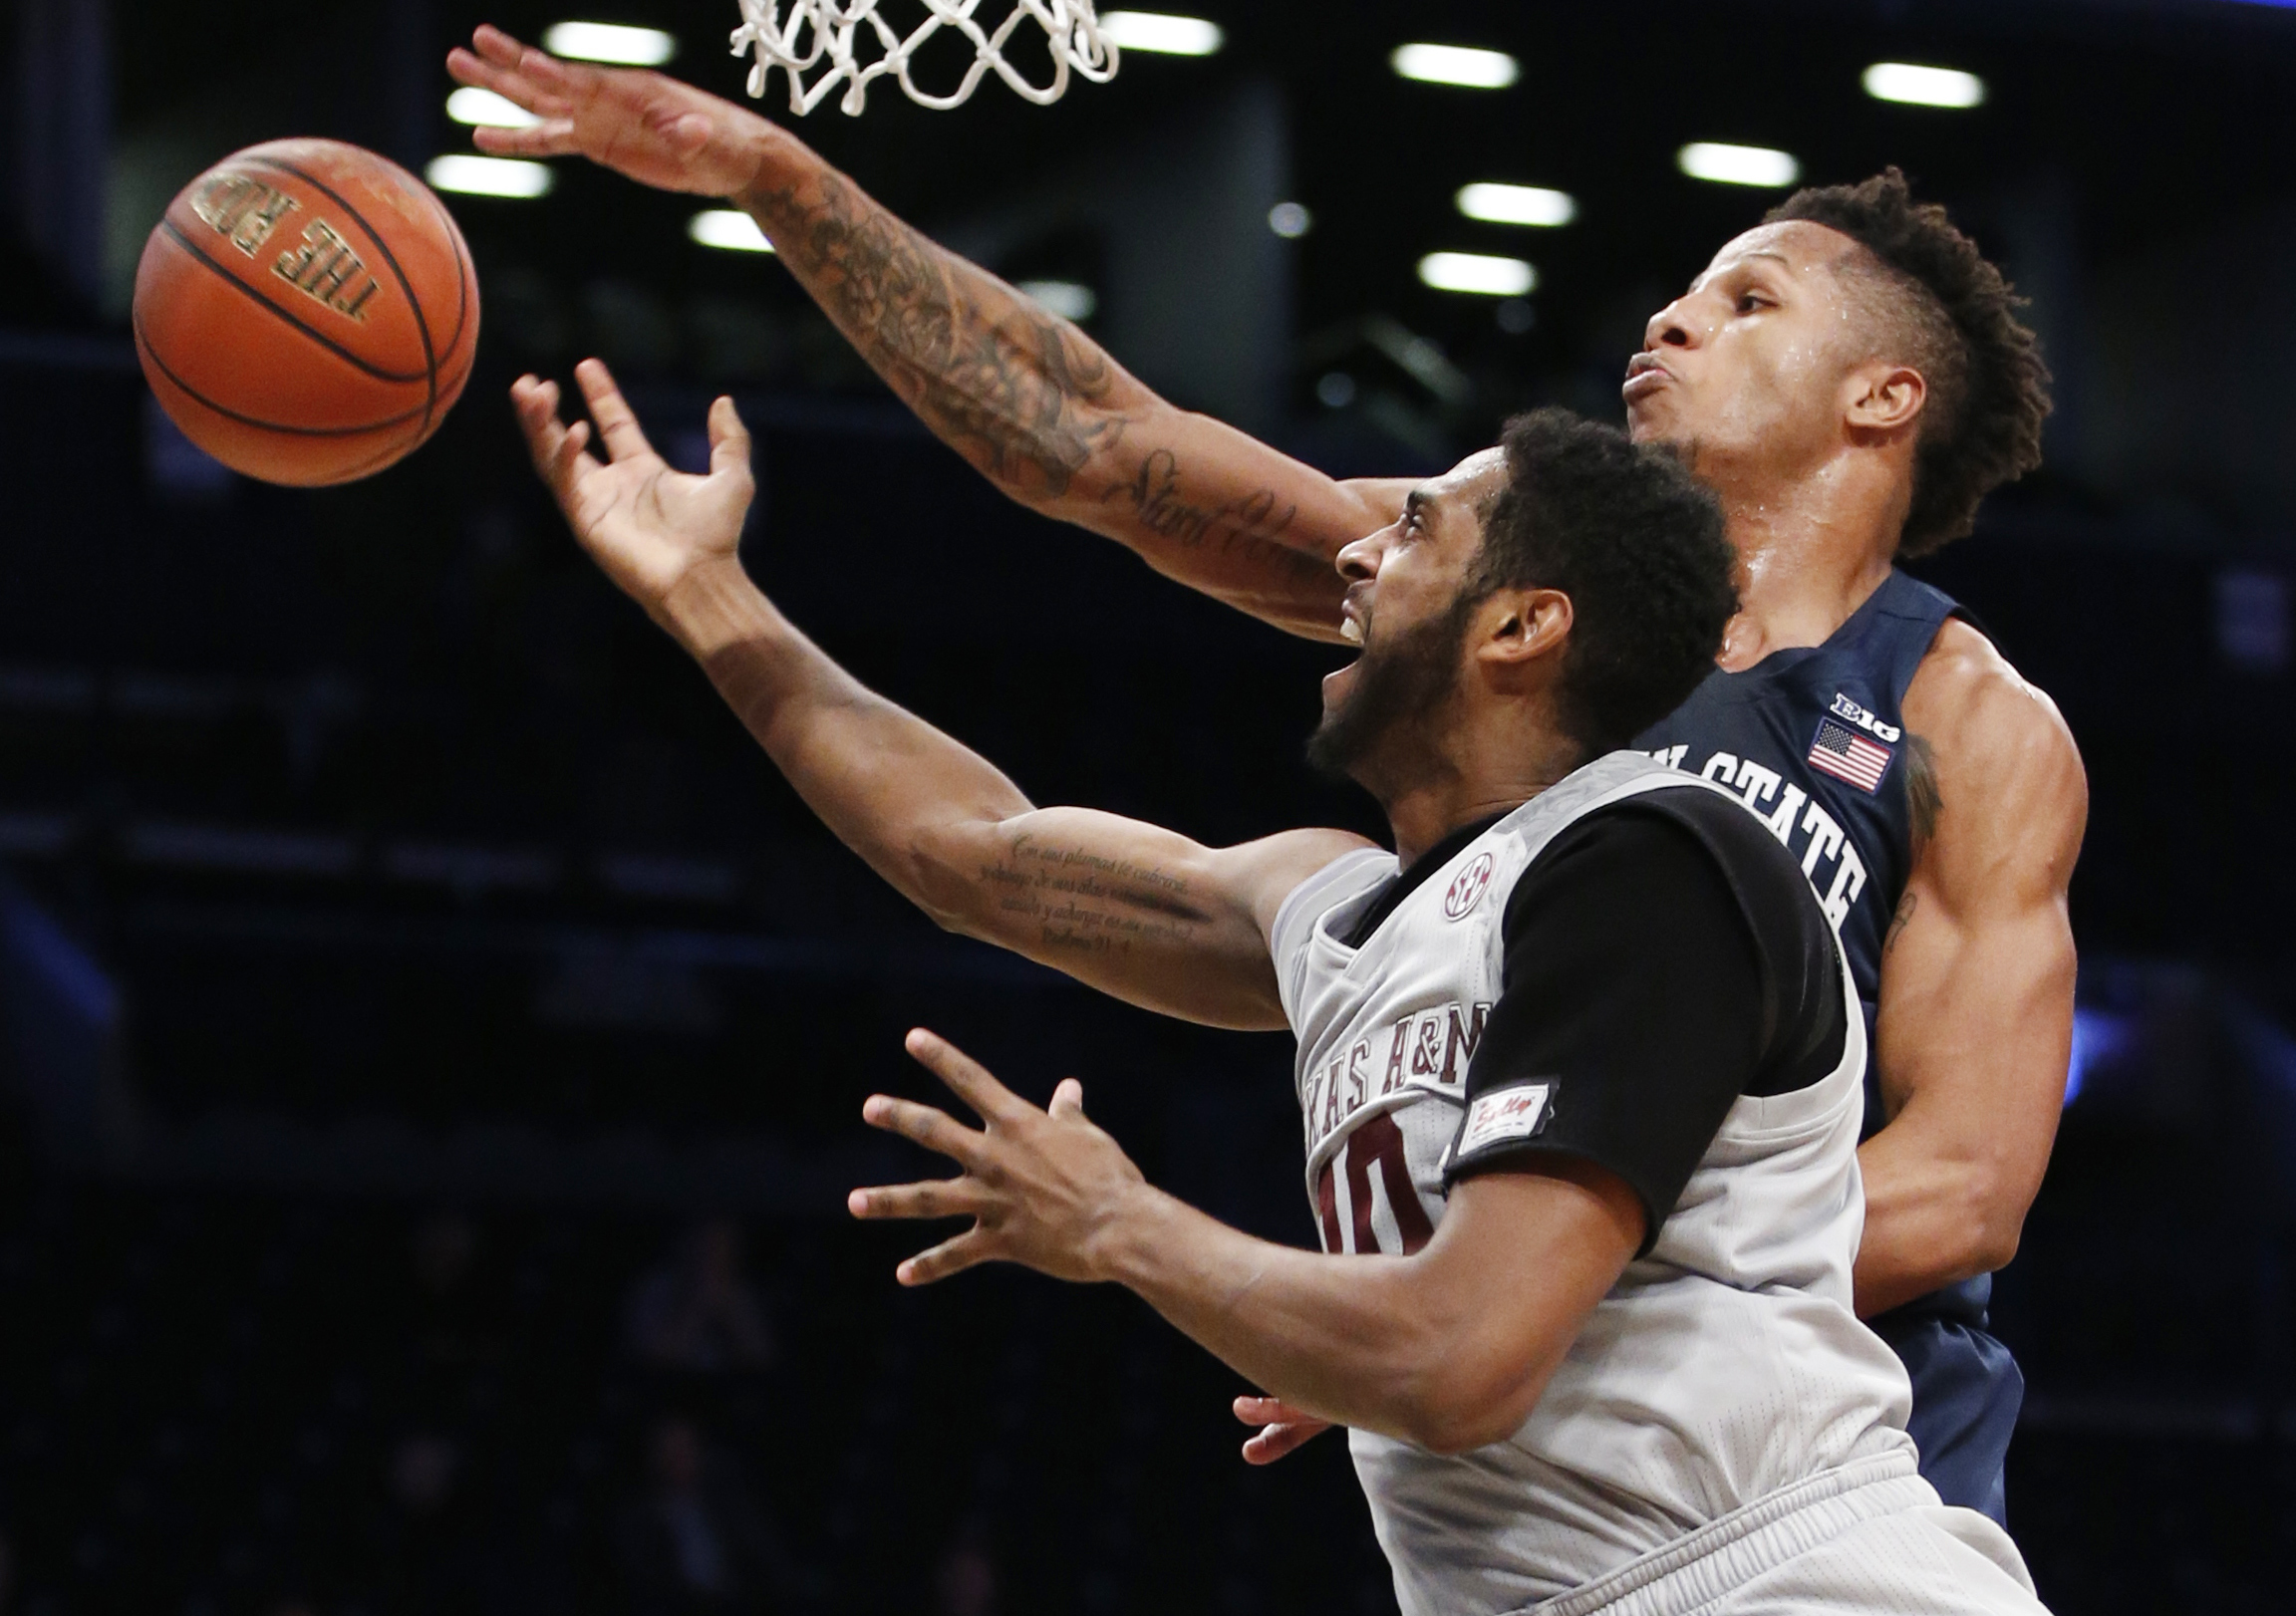 Penn State forward Lamar Stevens, above, knocks the ball from Texas A&M center Tonny Trocha-Morelos during the first half of an NCAA college basketball game in the Legends Classic tournament, Tuesday, Nov. 21, 2017, in New York. (AP Photo/Kathy Willens)